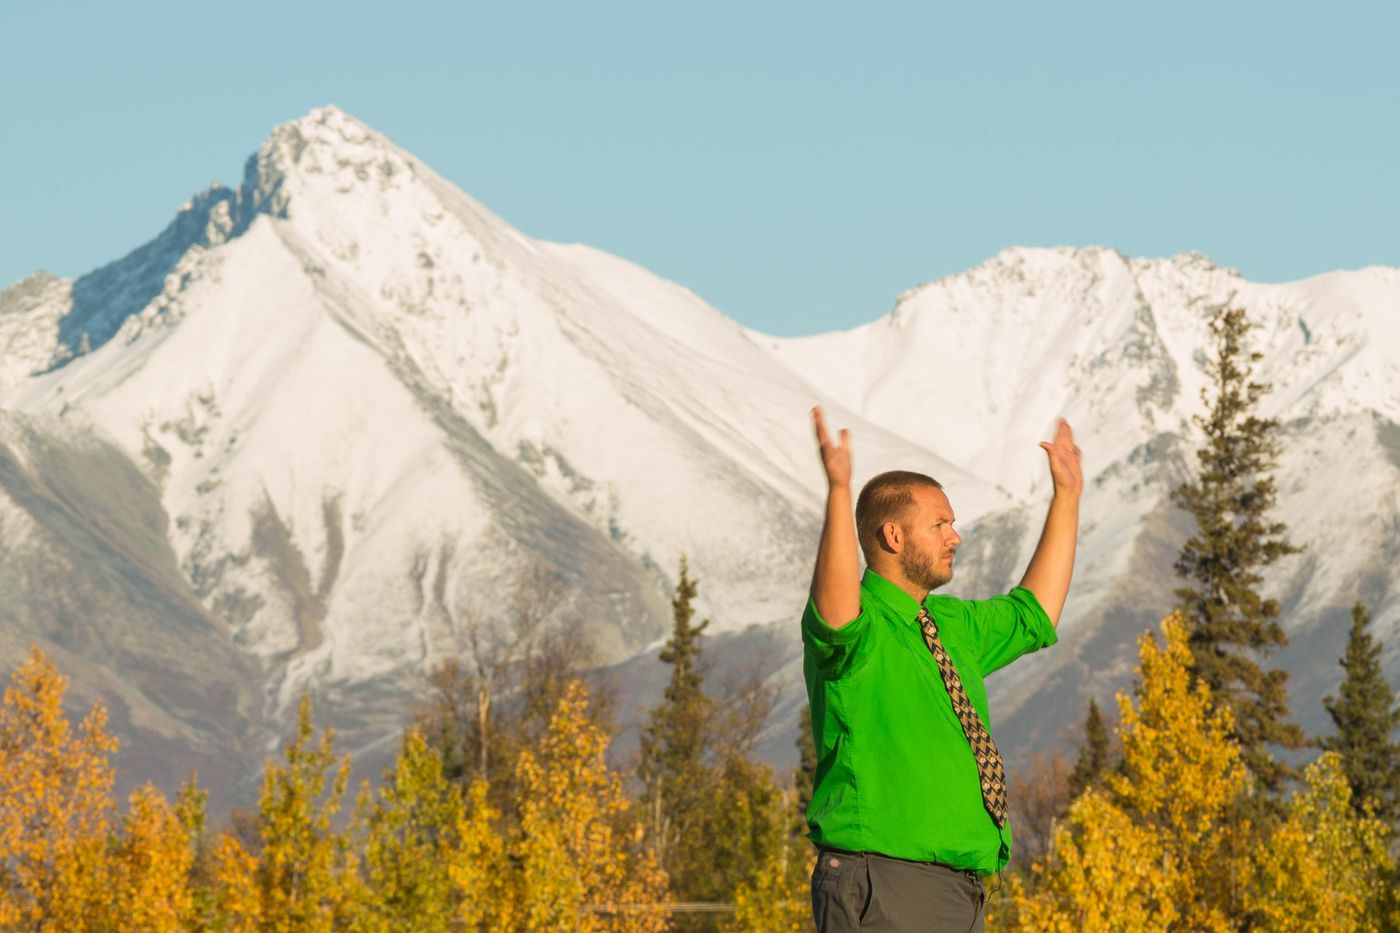 With Matanuska Peak behind, Colony High School band director Jamin Burton conducts the marching band during a performance on Thursday, September 24, 2015. His group is the only high school marching band in Alaska.